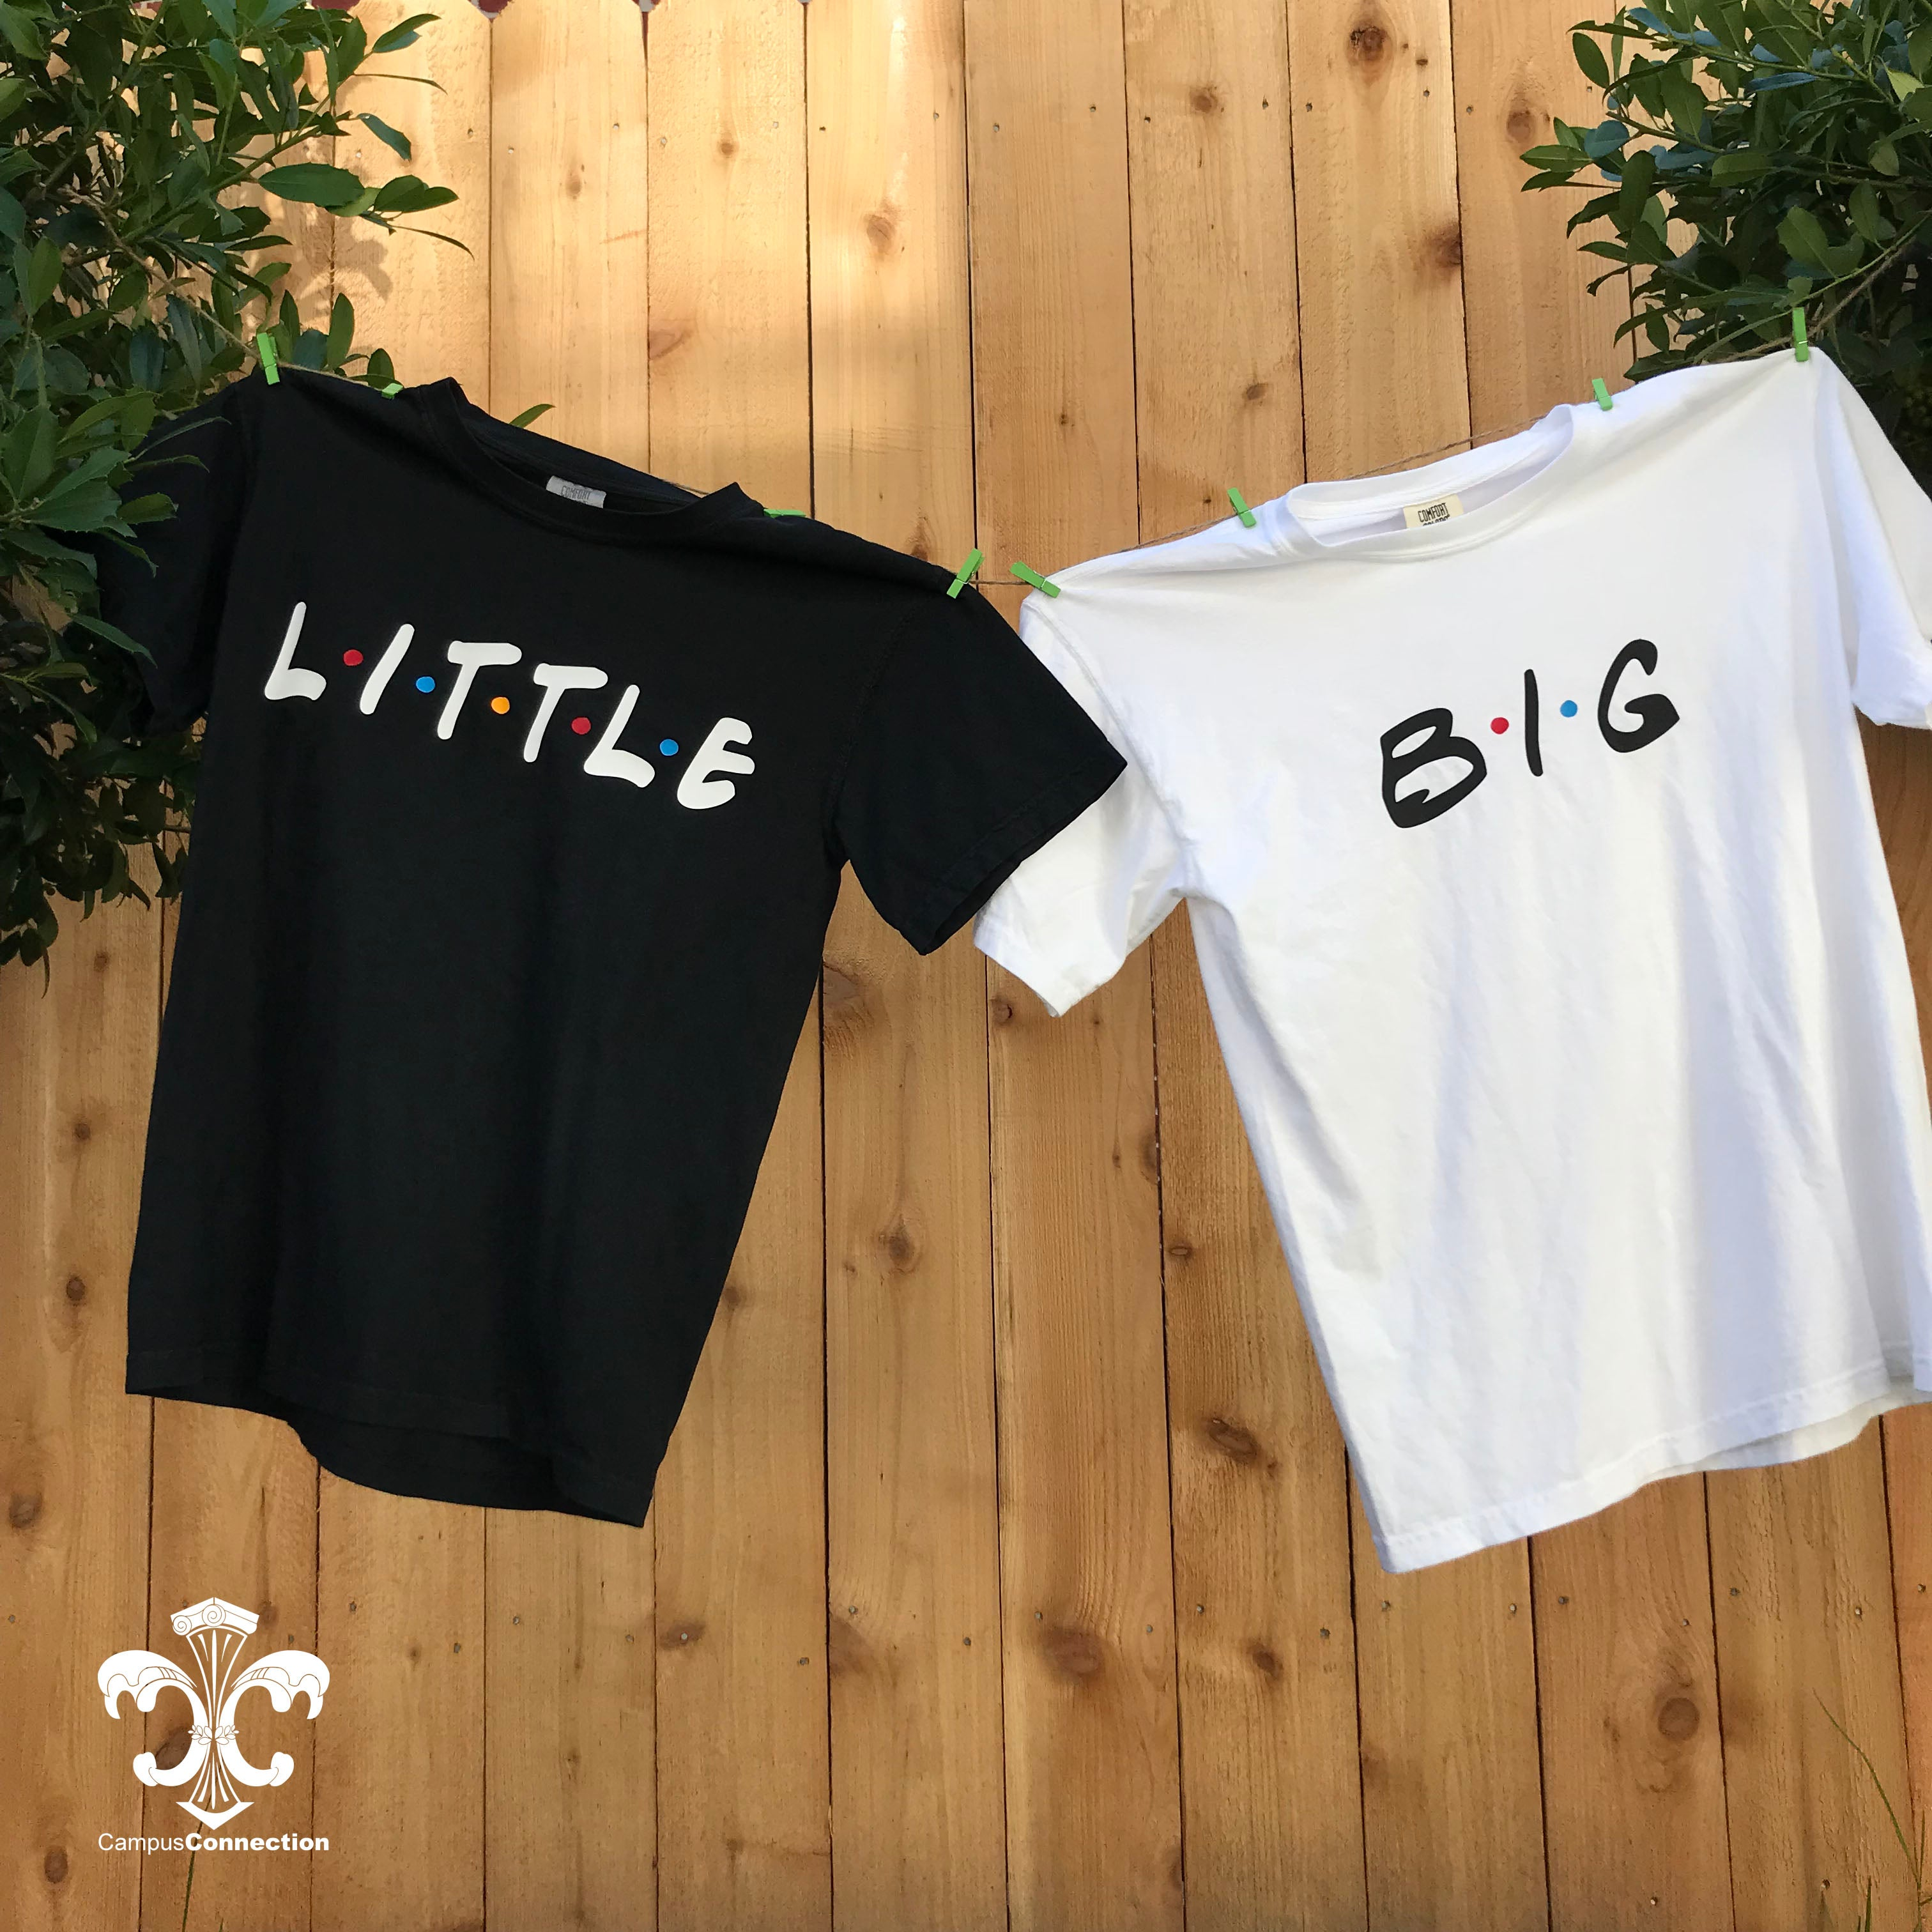 1a330ae7d Home > Products > Big/Little/GBig/GGBig Friends Sorority Comfort Colors  Shirt